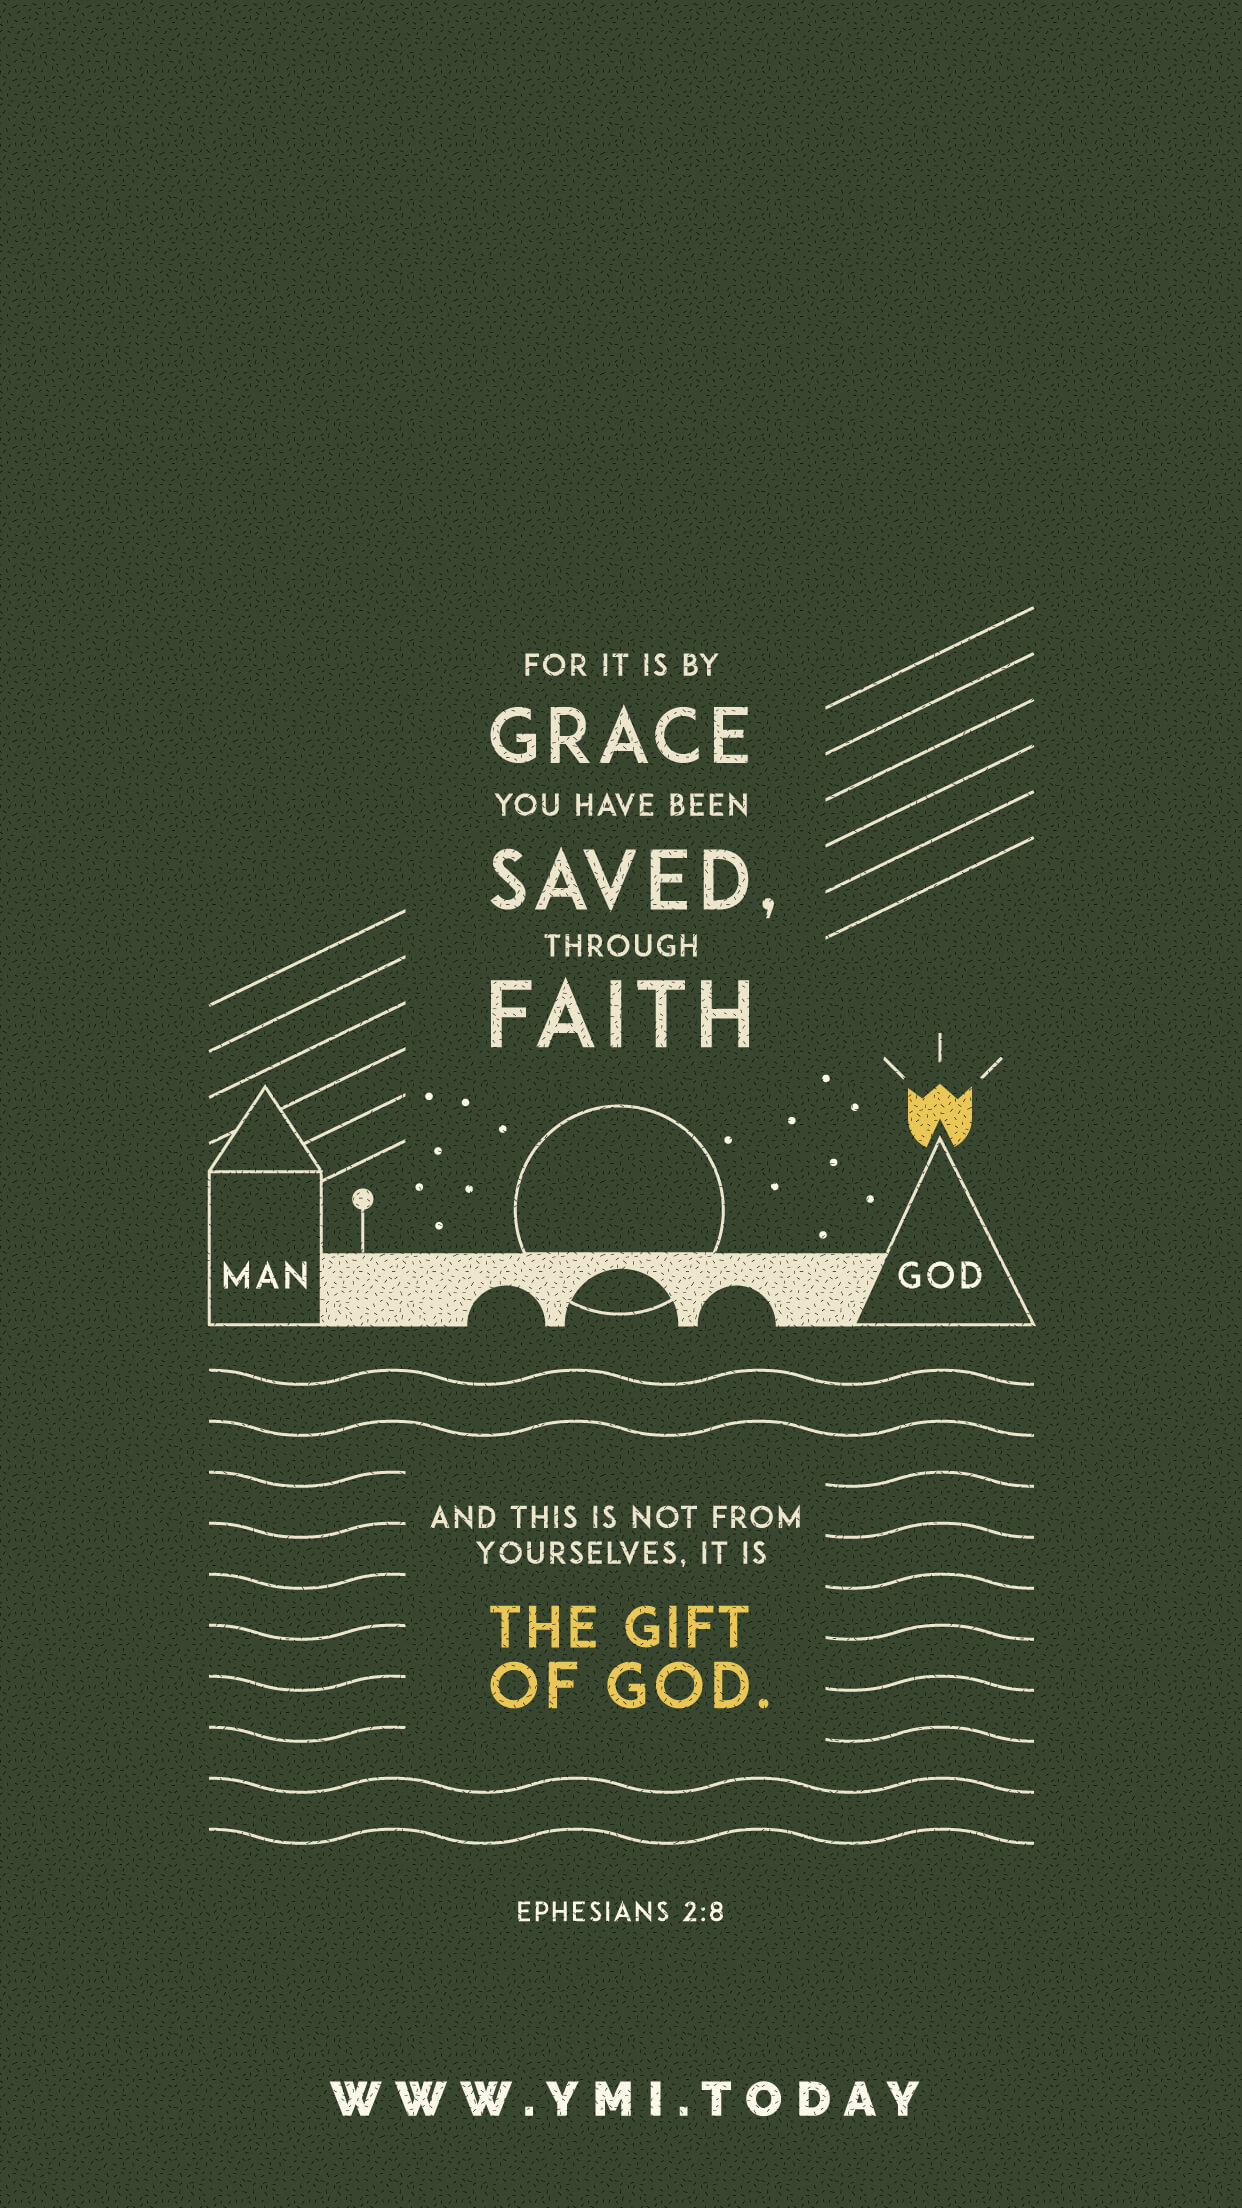 YMI August 2016 Phone Lockscreen - For it is by grace you have been saved through faith; and this is not from yourselves, it is the gift of God.- Ephesians 2:8